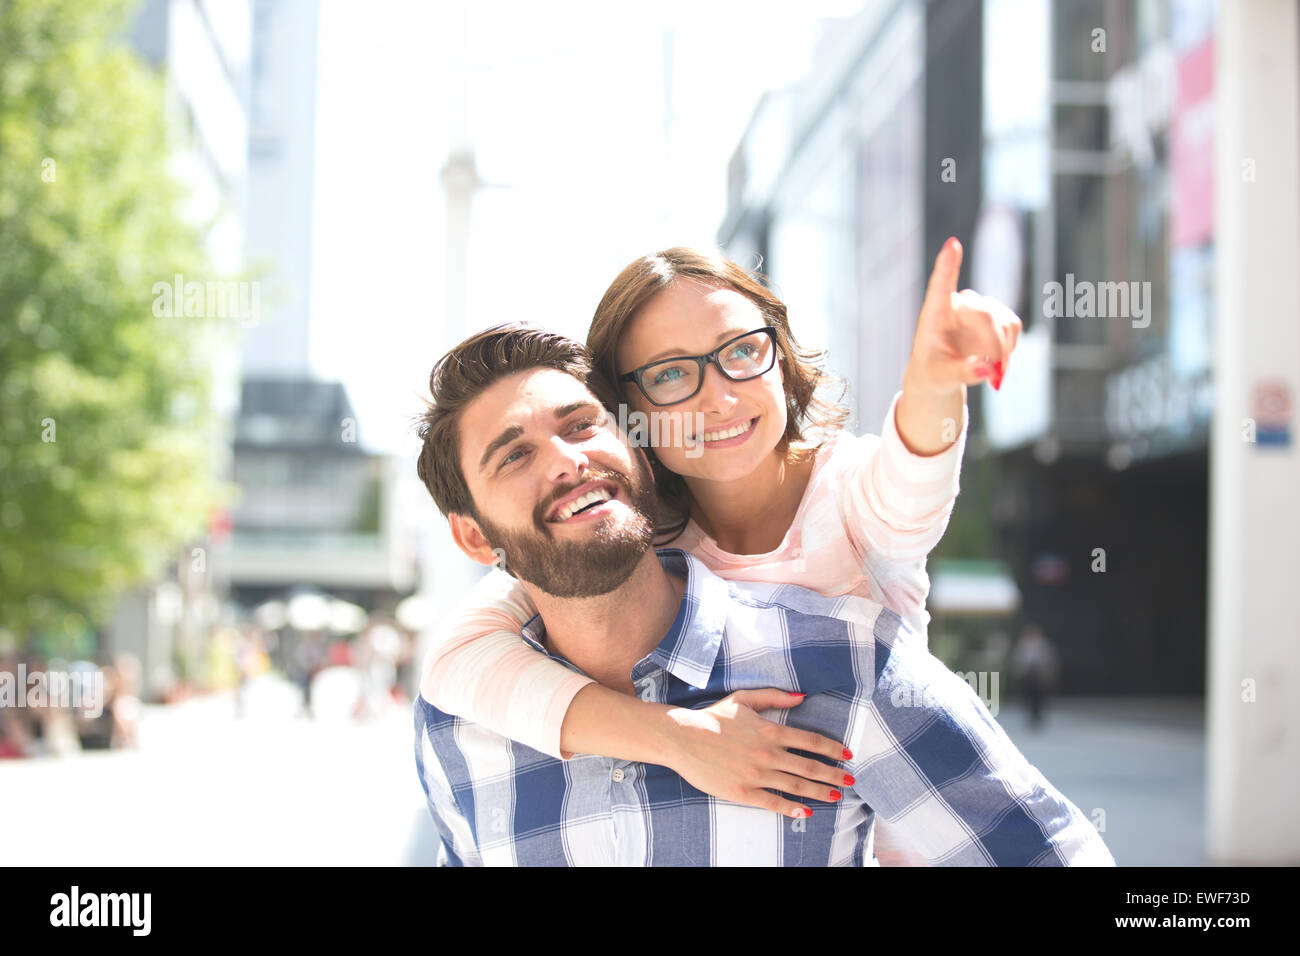 Cheerful woman pointing away while enjoying piggyback ride on man in city Stock Photo